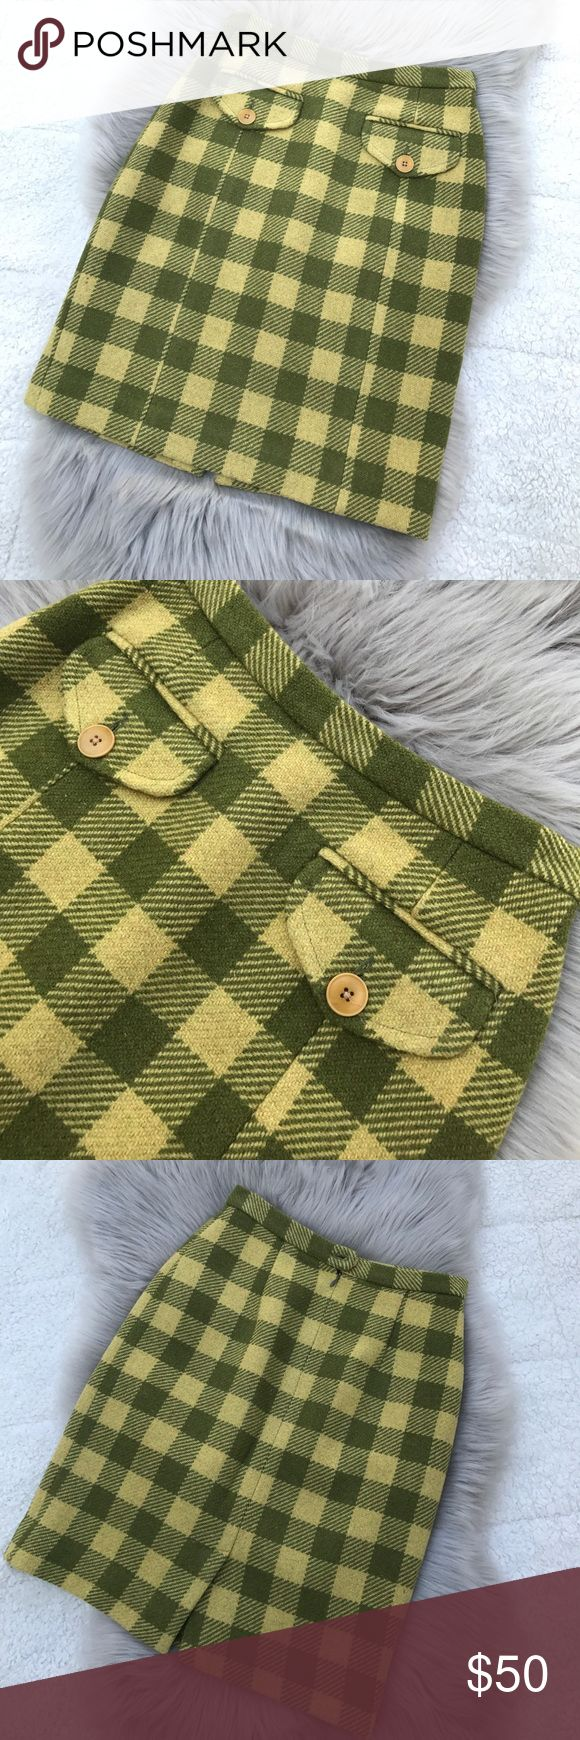 BANANA REPUBLIC Women's Wool Plaids Skirt Sz 2 Like brand new A Line Wool Plaids skirts. Size 2. Waist to hem is 20 inches. The Zipper has been changed to brand new YKK Zipper and has been dry clean. Color is green and yellow green. Price is firm due to alterations on Zipper and dry clean cost to protect the fabric, thank you. Banana Republic Skirts Midi